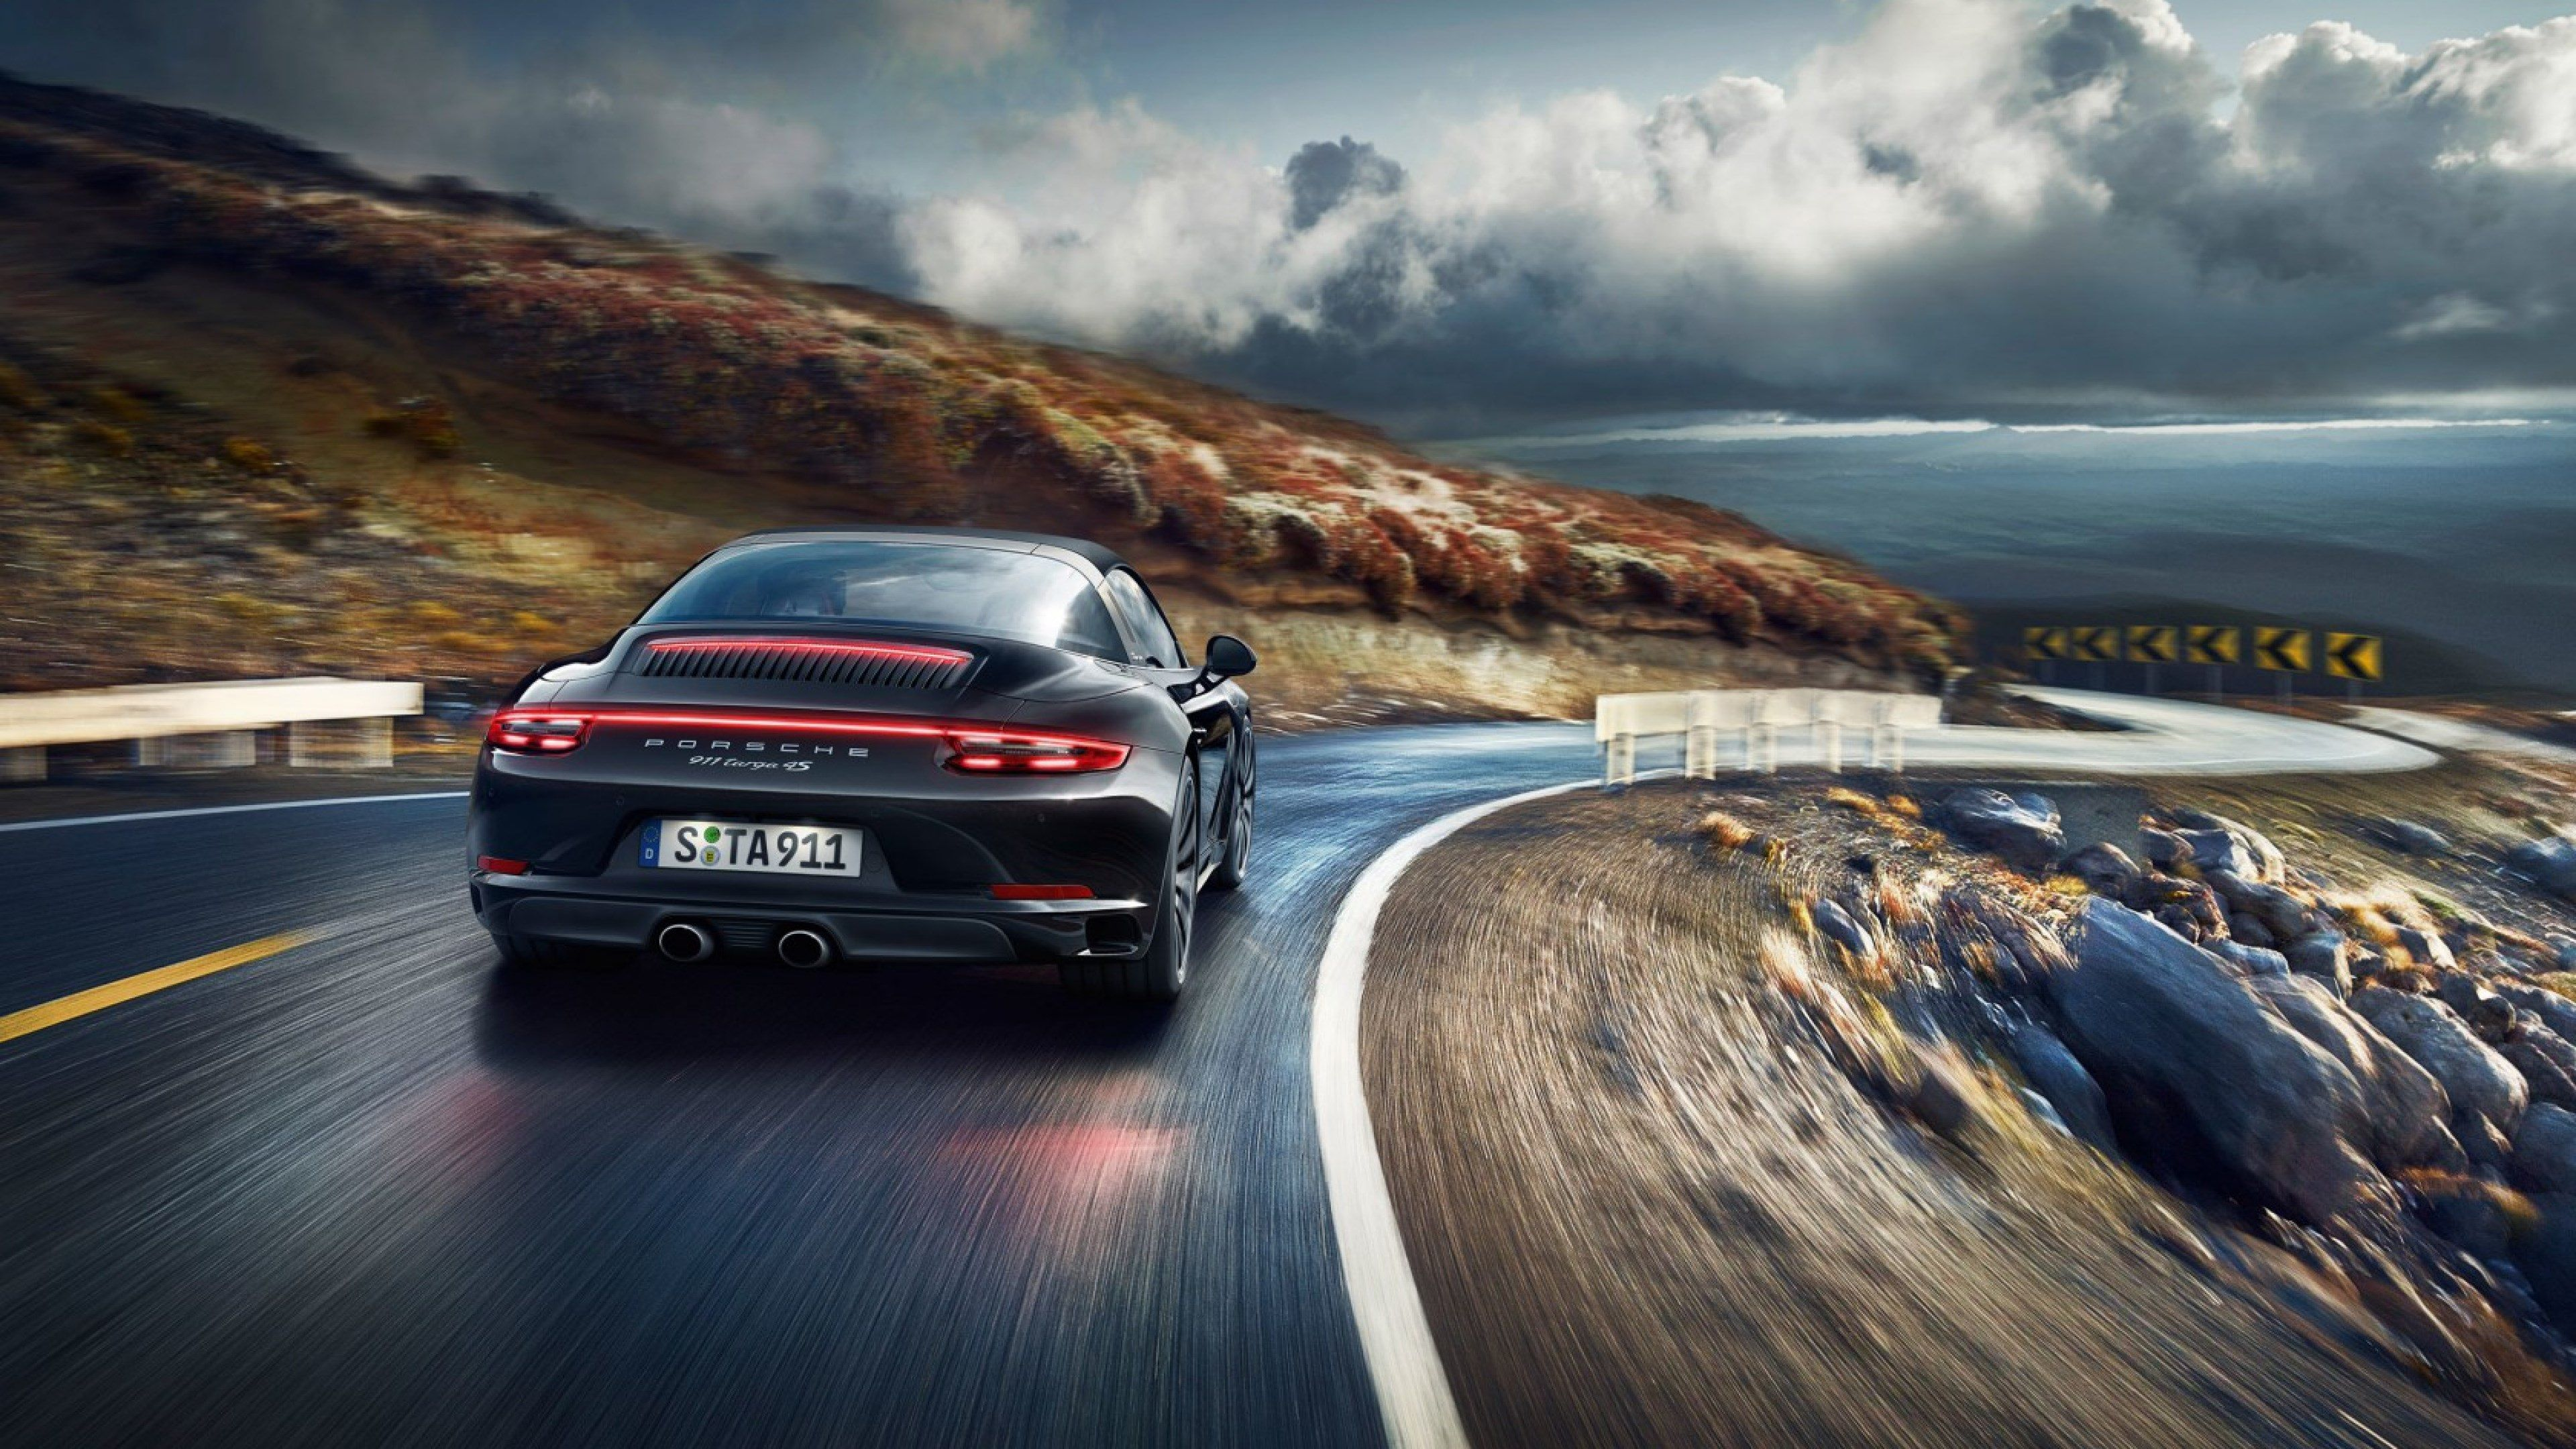 Pin On Porsche Wallpapers